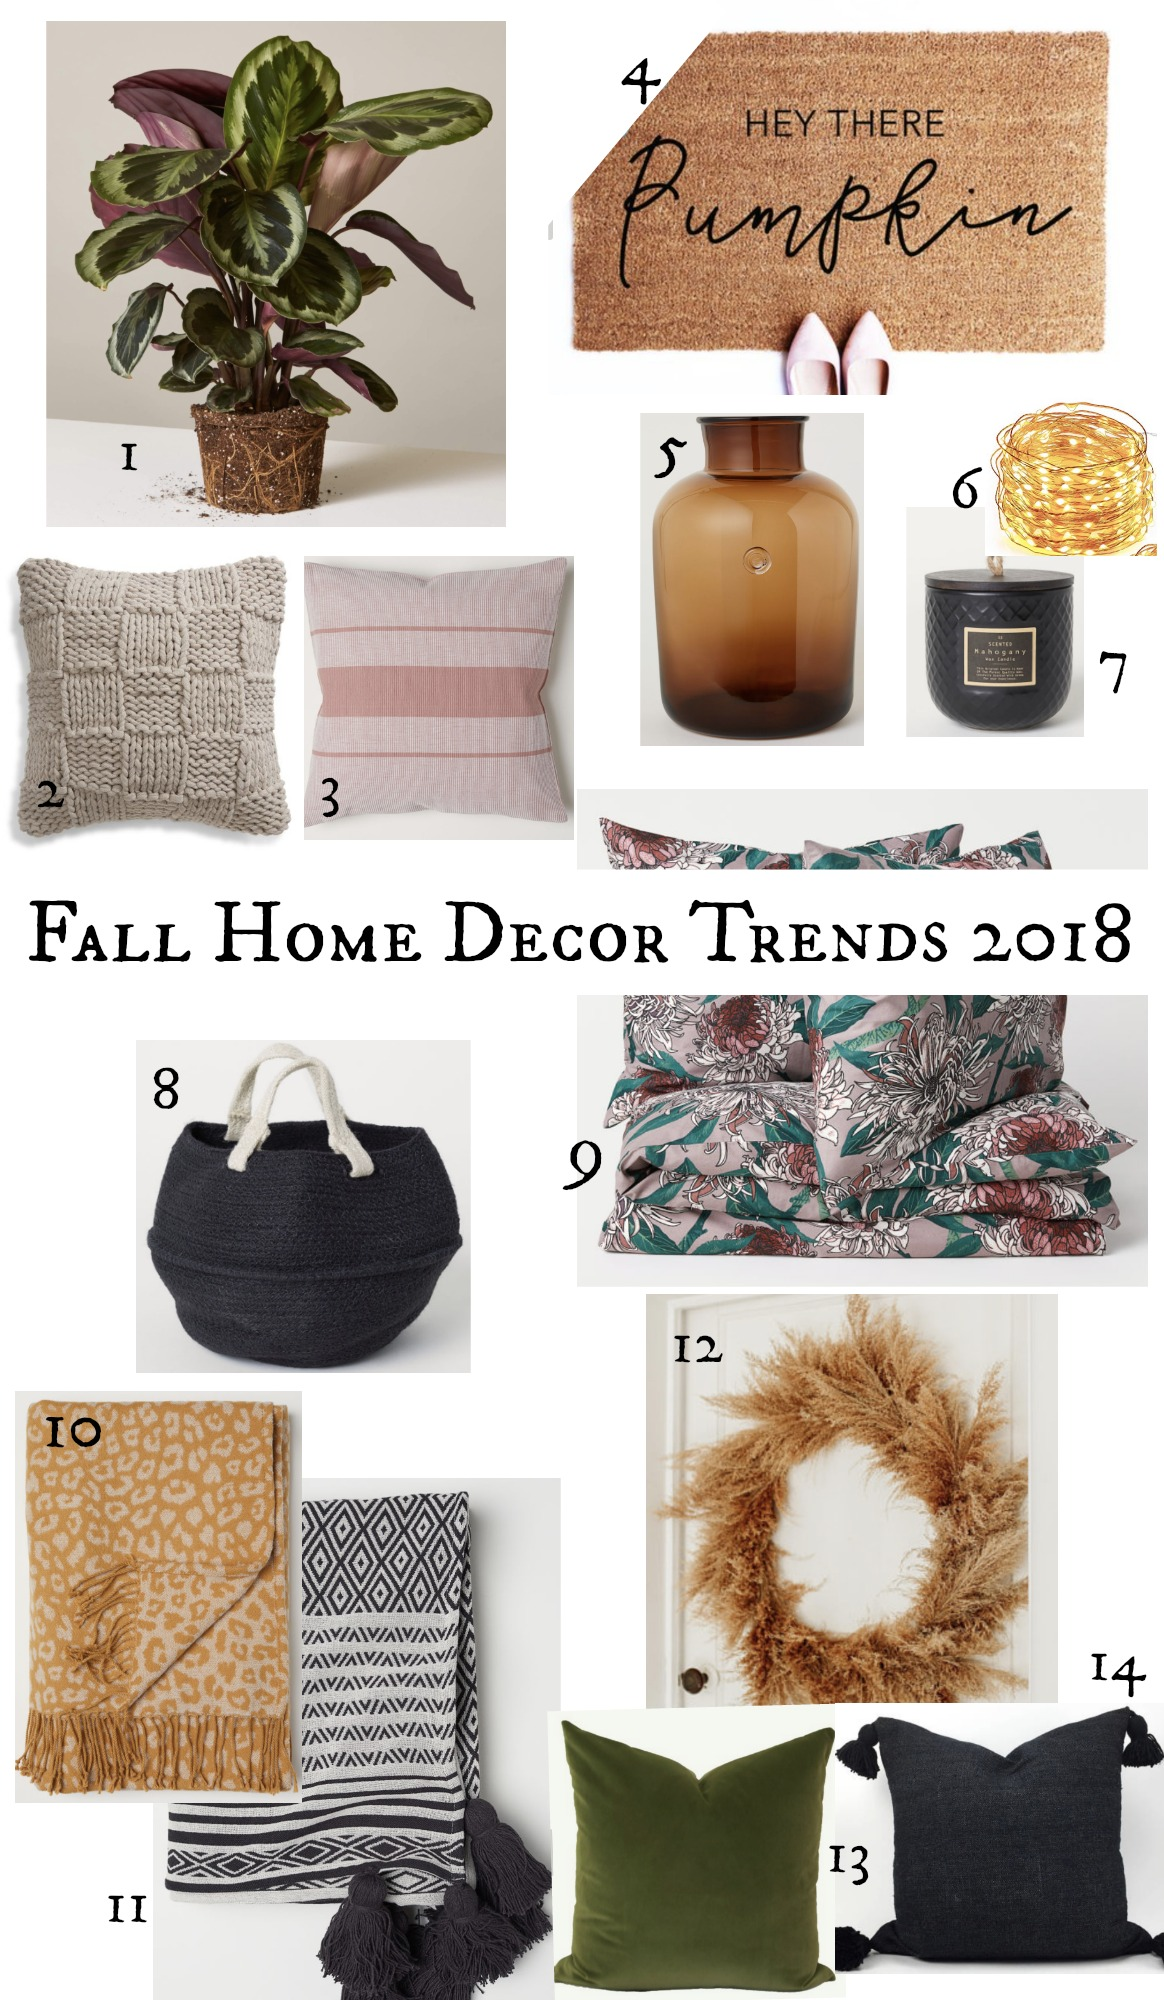 2018 Home Decor Color Trends Friday Favorites 10 Fall Home Decor Trends 2018 Nesting